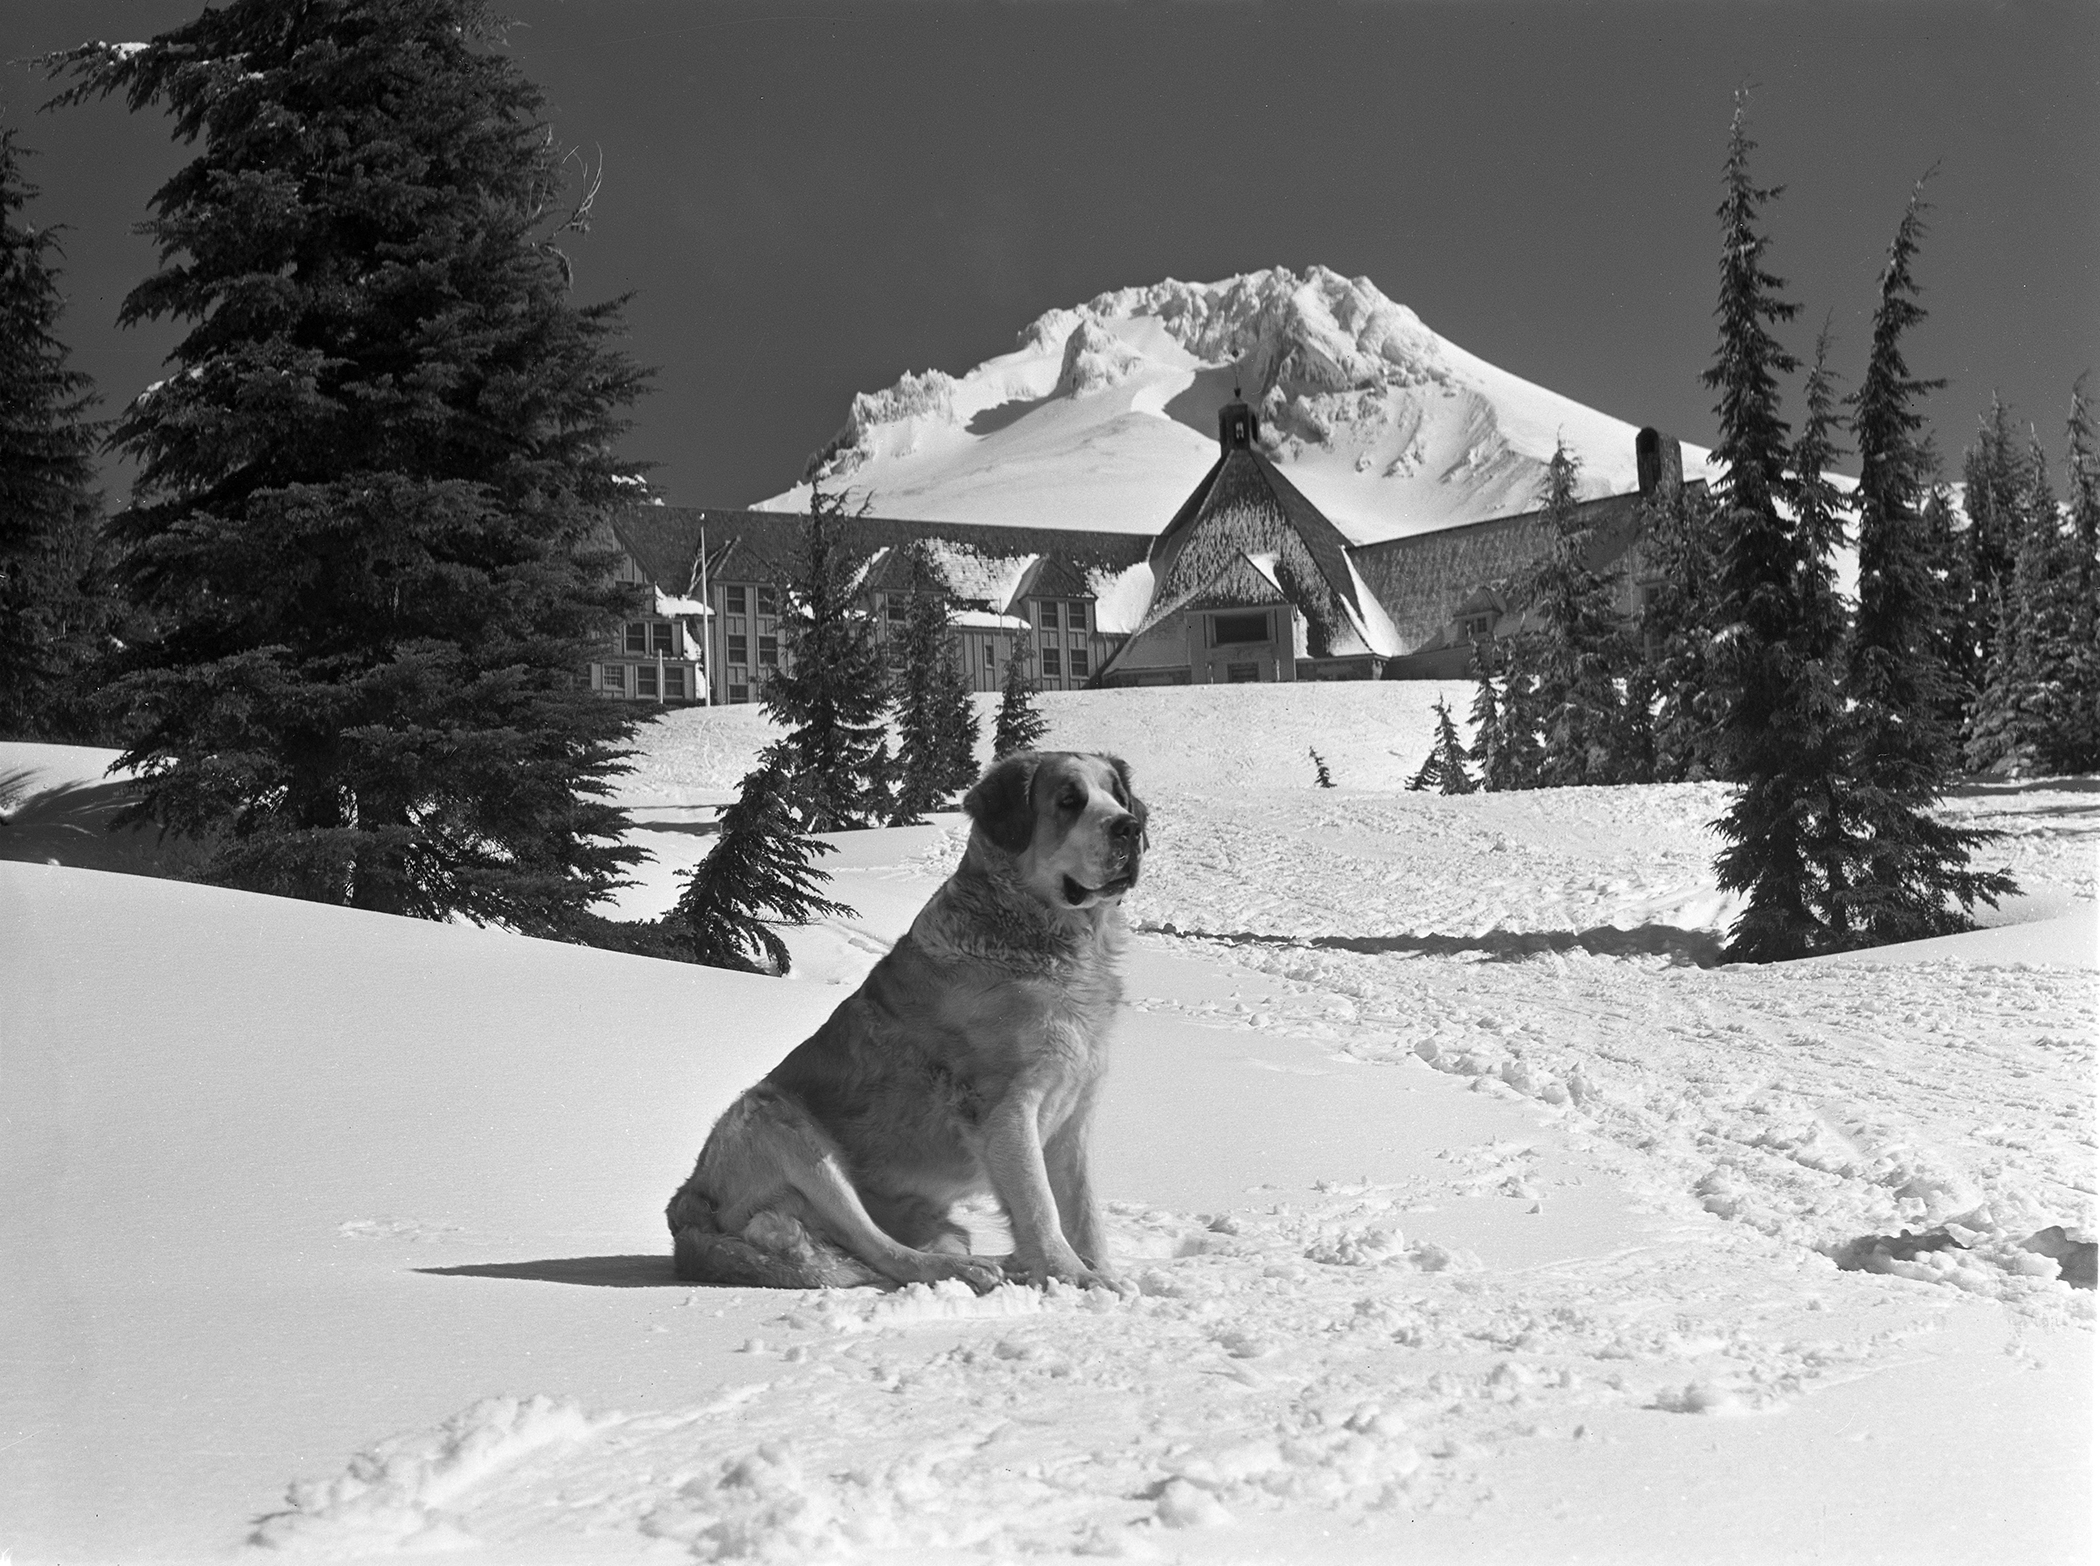 Timberline Lodge and Mt. Hood Recreation between 1937 and 1946